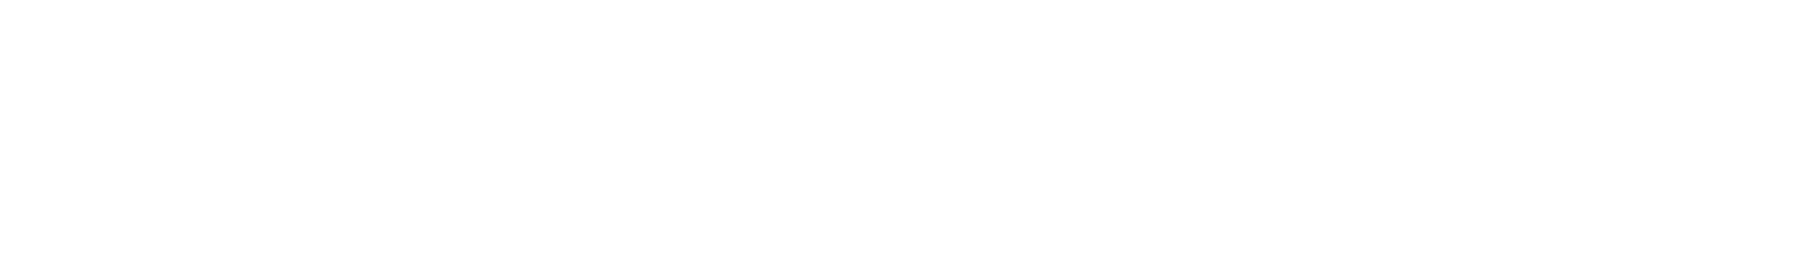 snare12